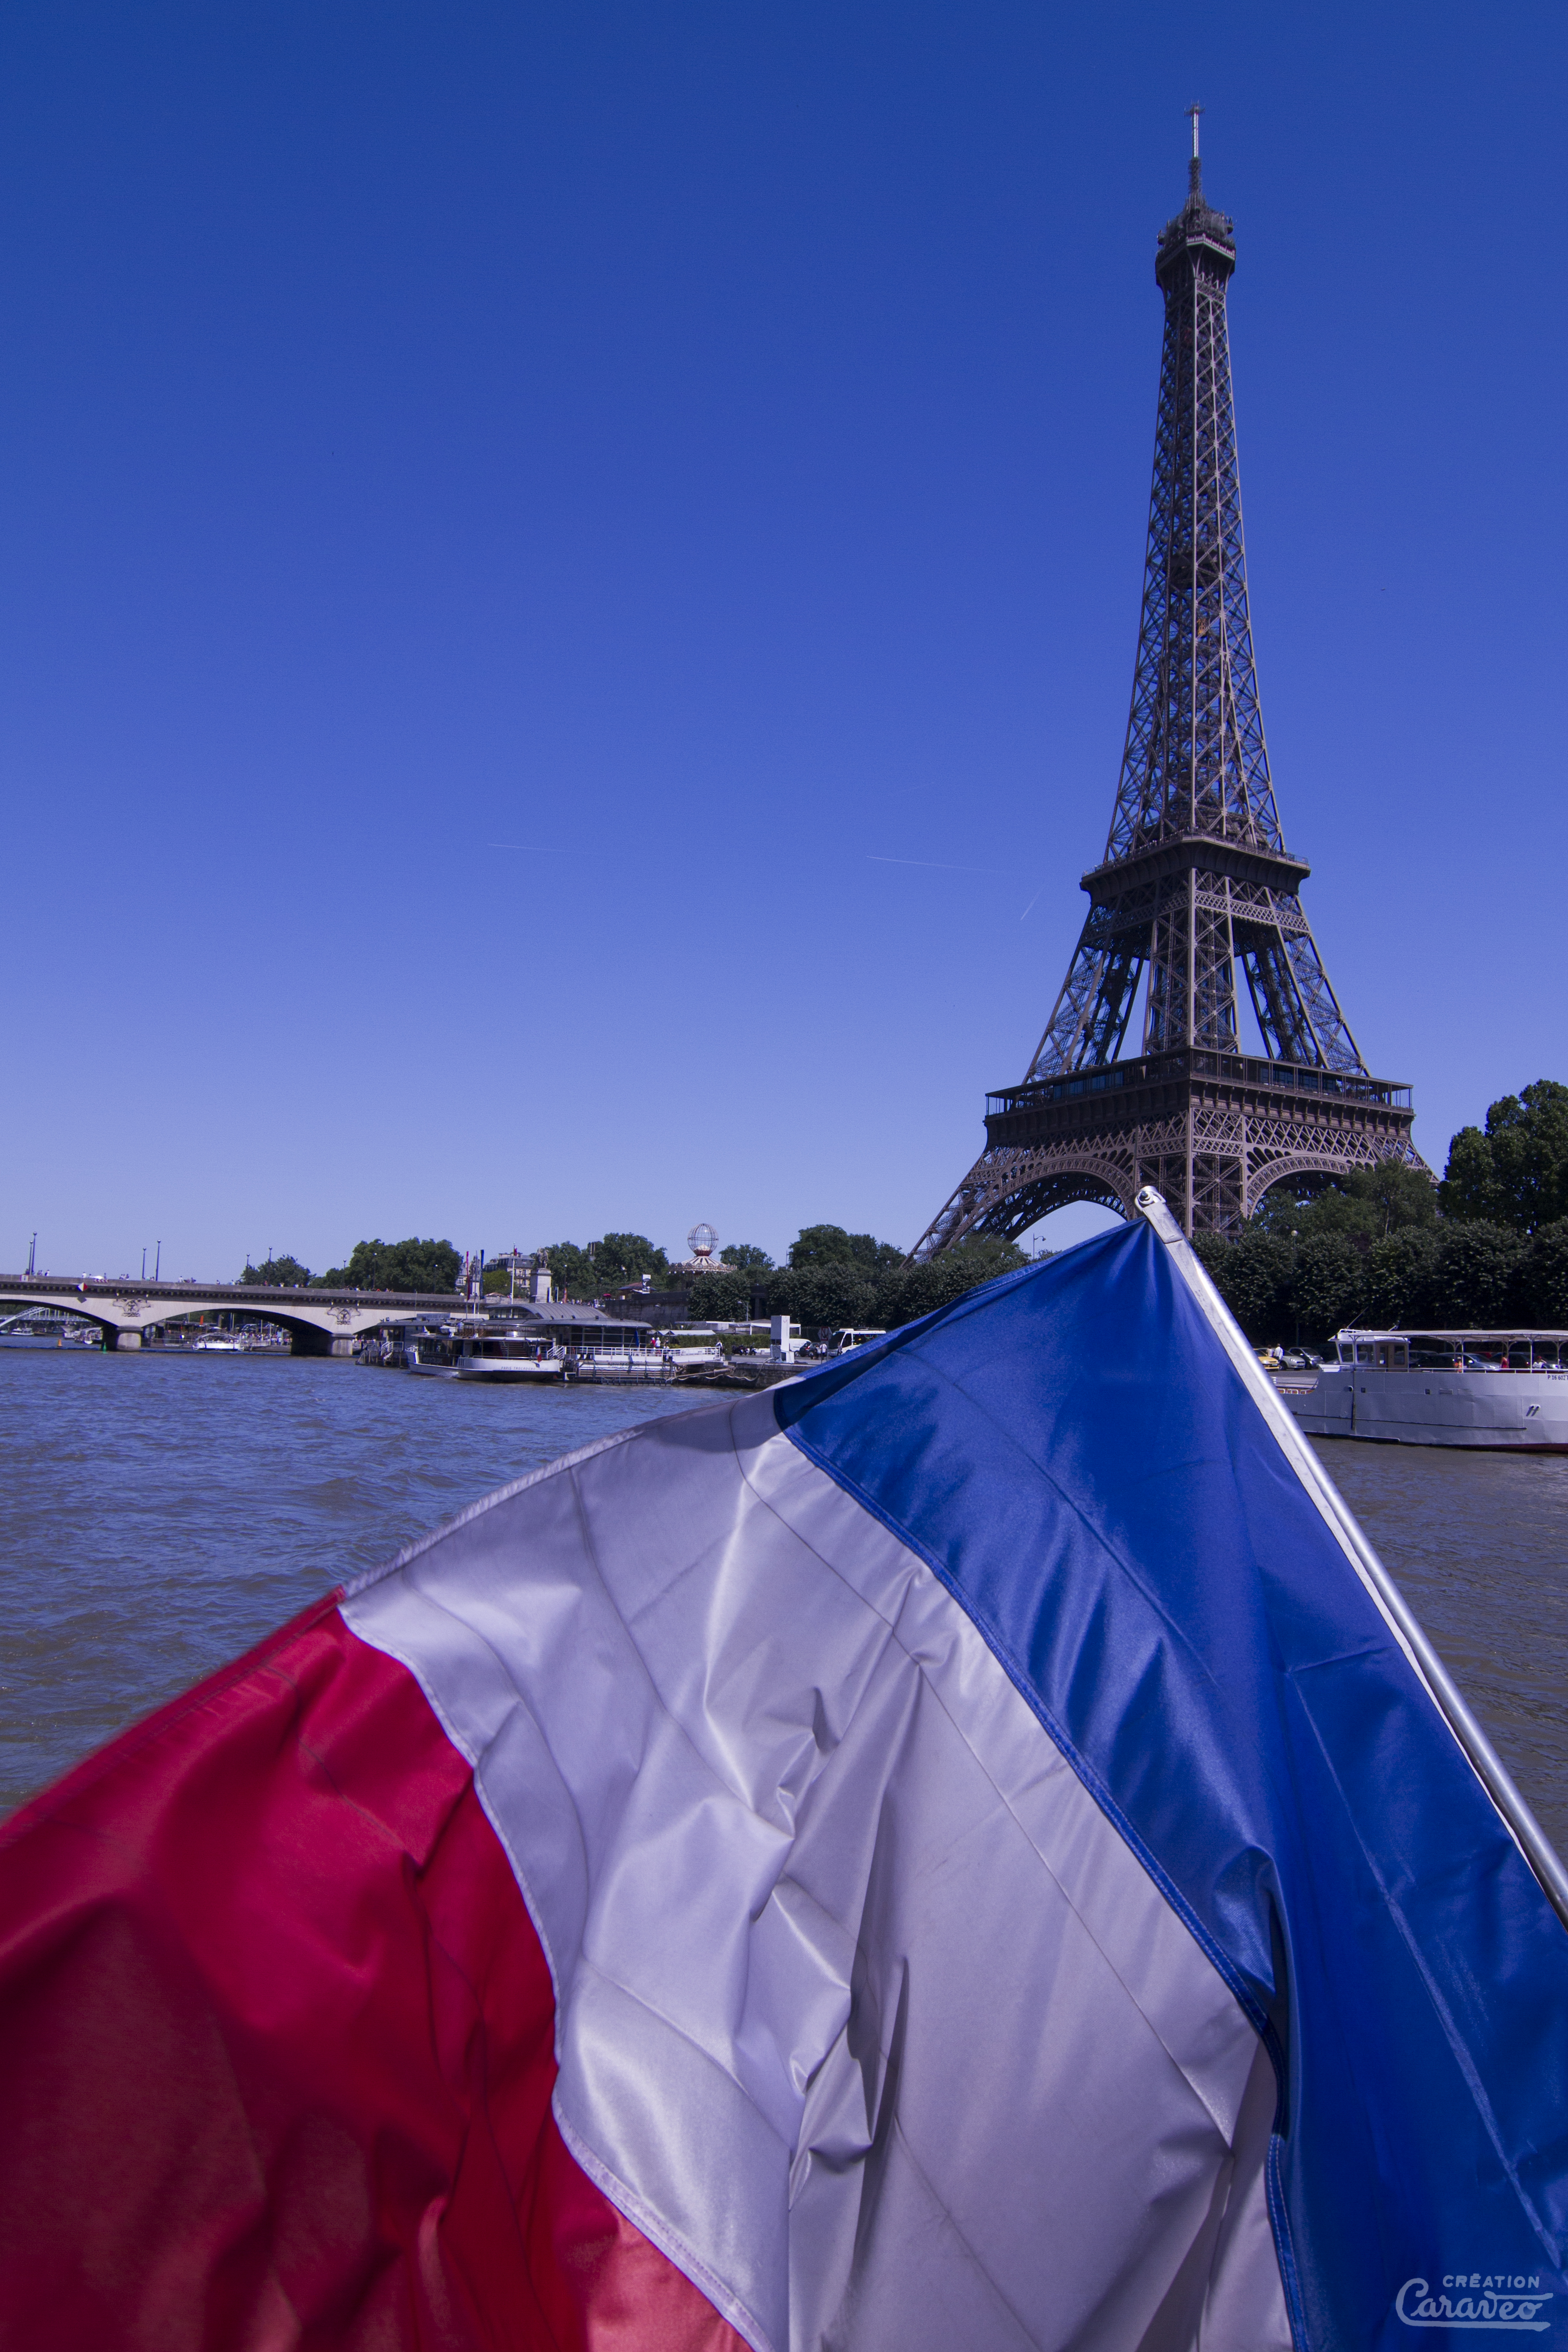 The French flag with the national colours blue, white, and red in front of the Eiffel Tower in Paris.